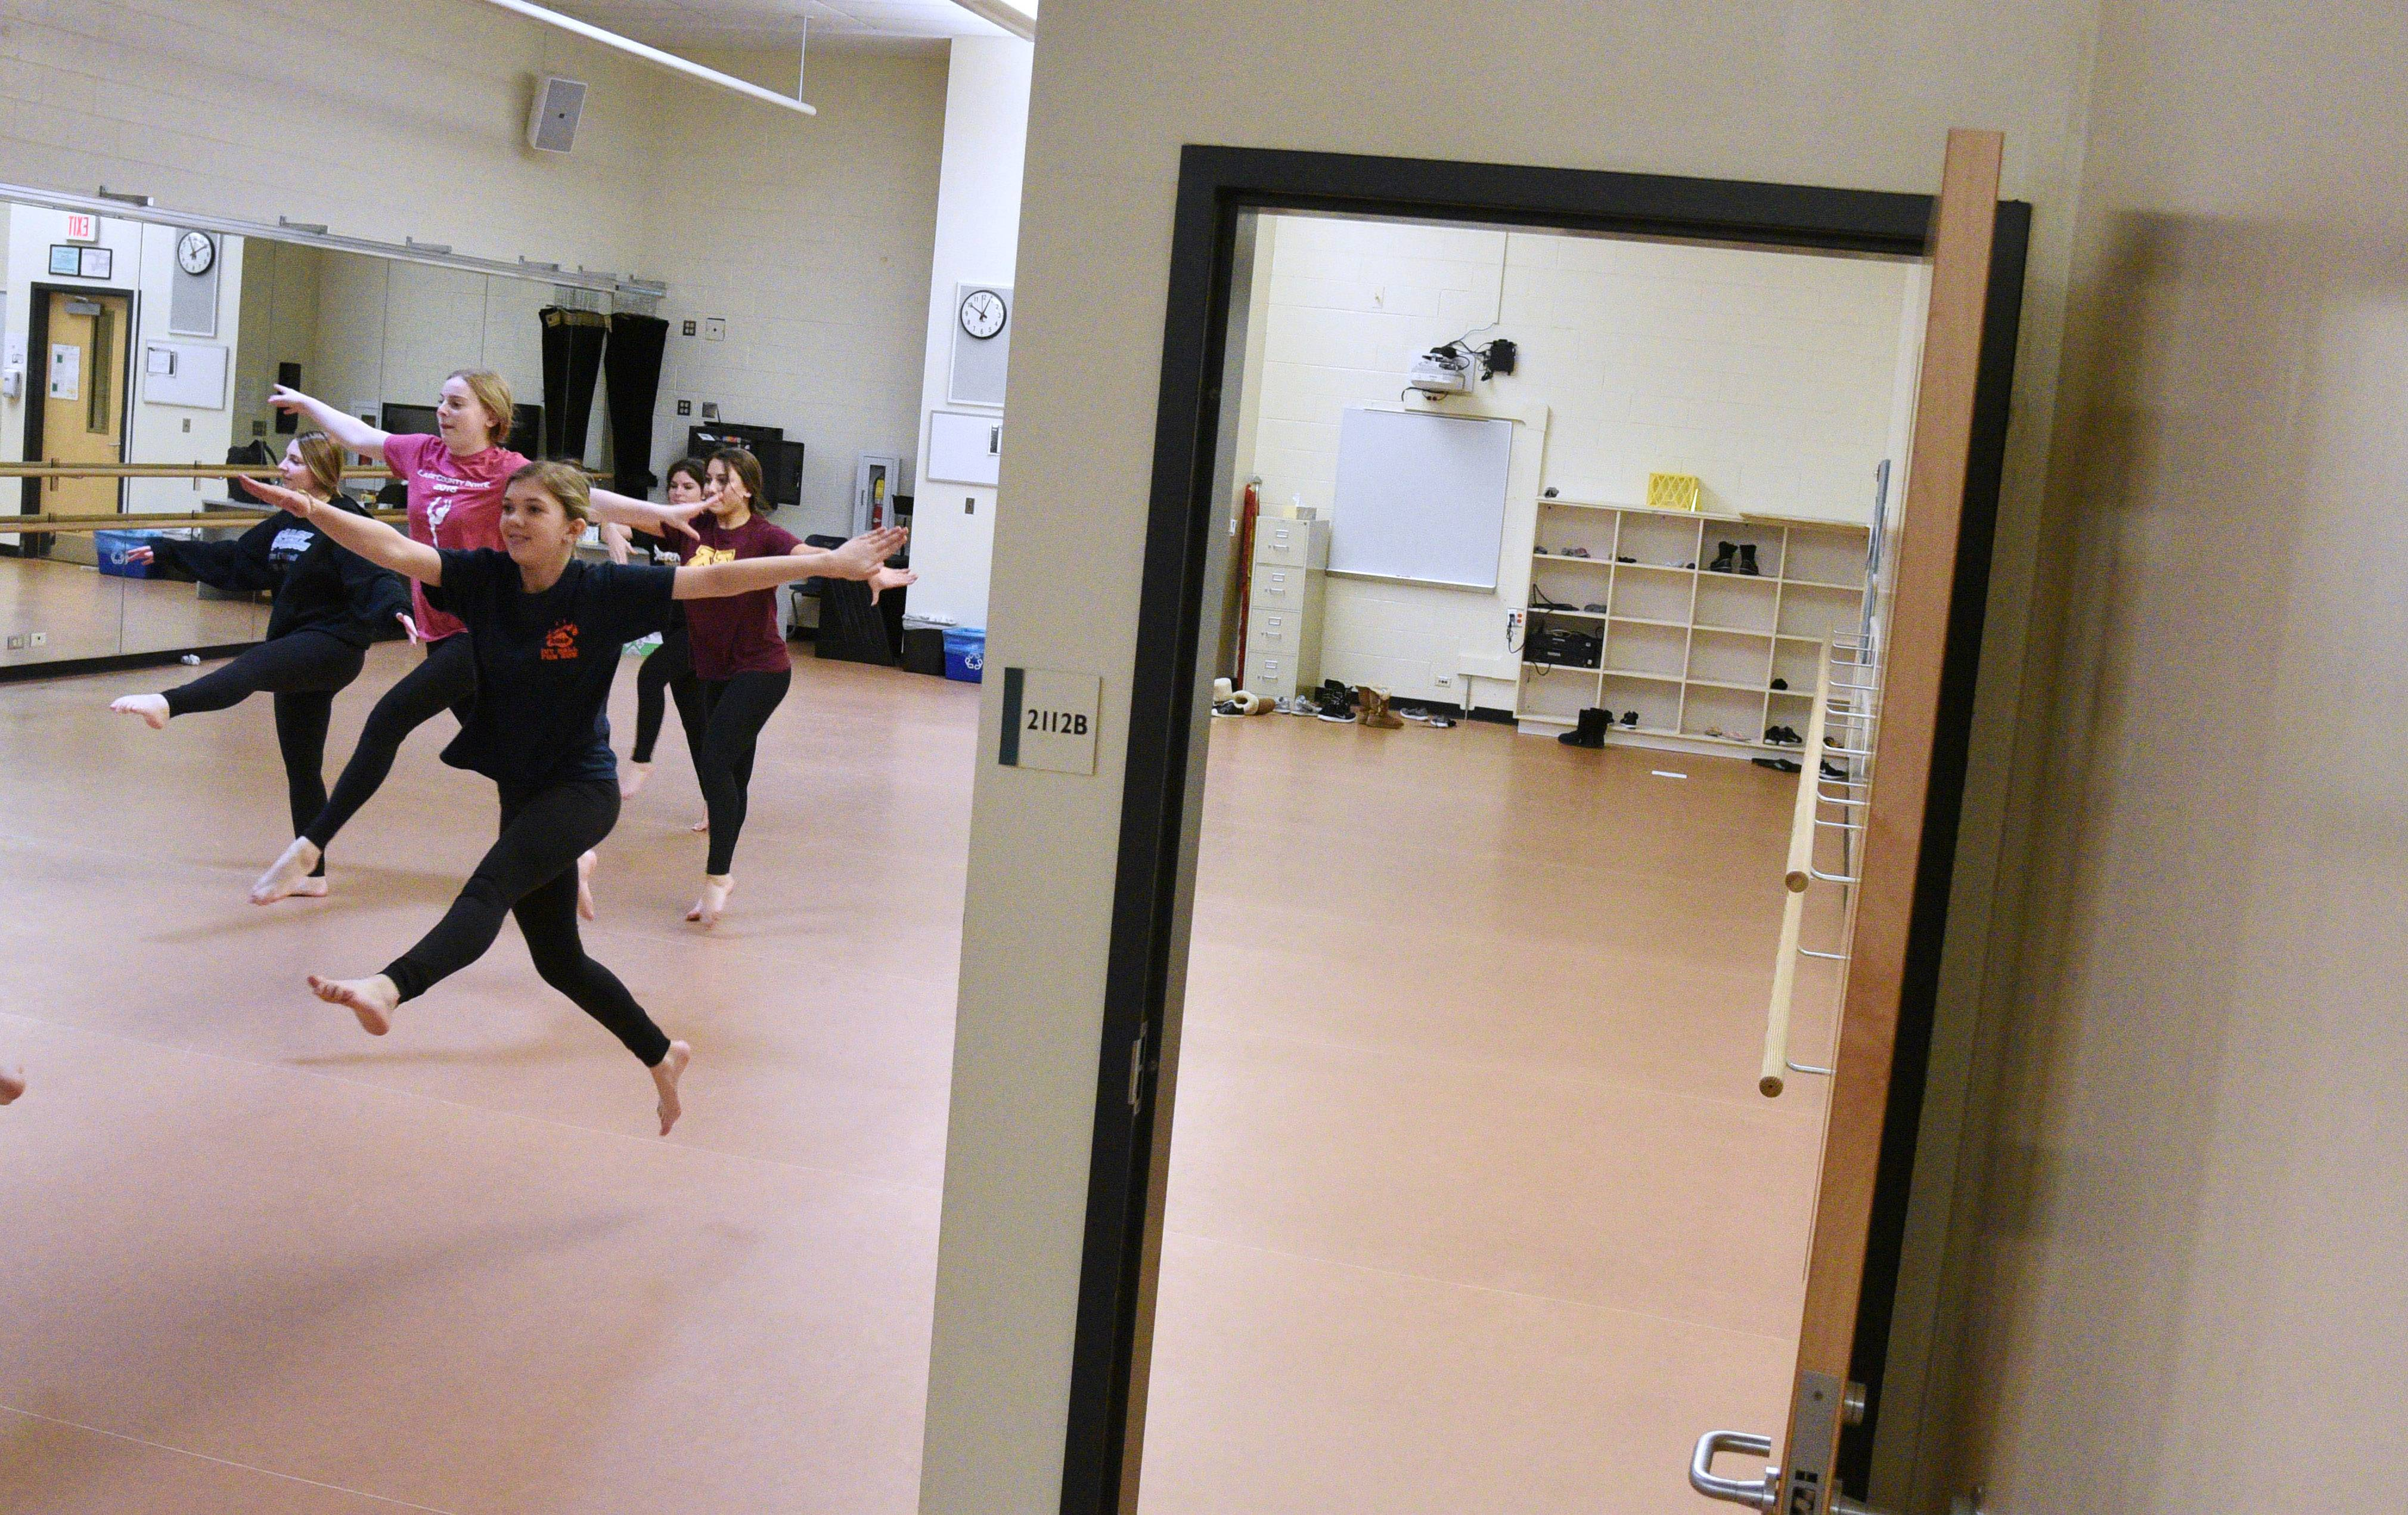 As part of a Stevenson High School improvement project this summer, a wall and doorway will be removed from one of the dance studios to provide more space.